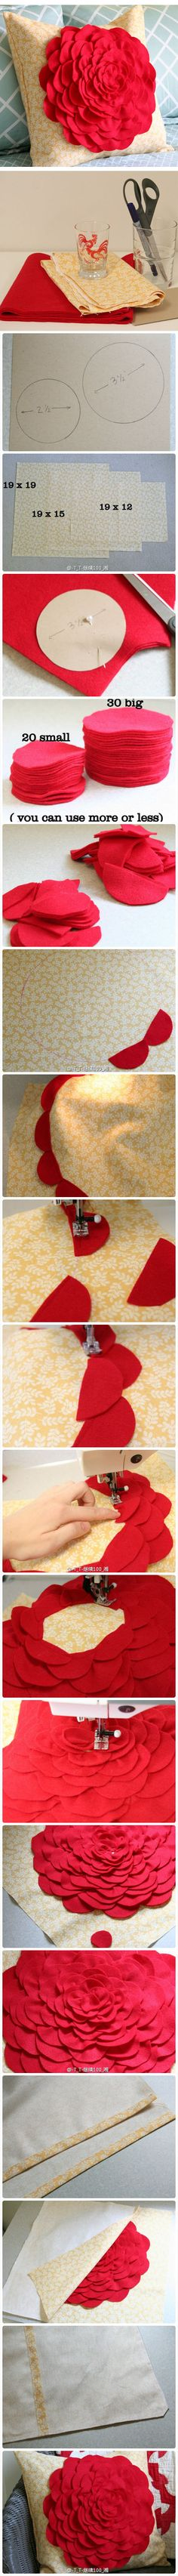 I've been looking for instructions for something like this for a long time. Another reason to dust off the sewing machine!